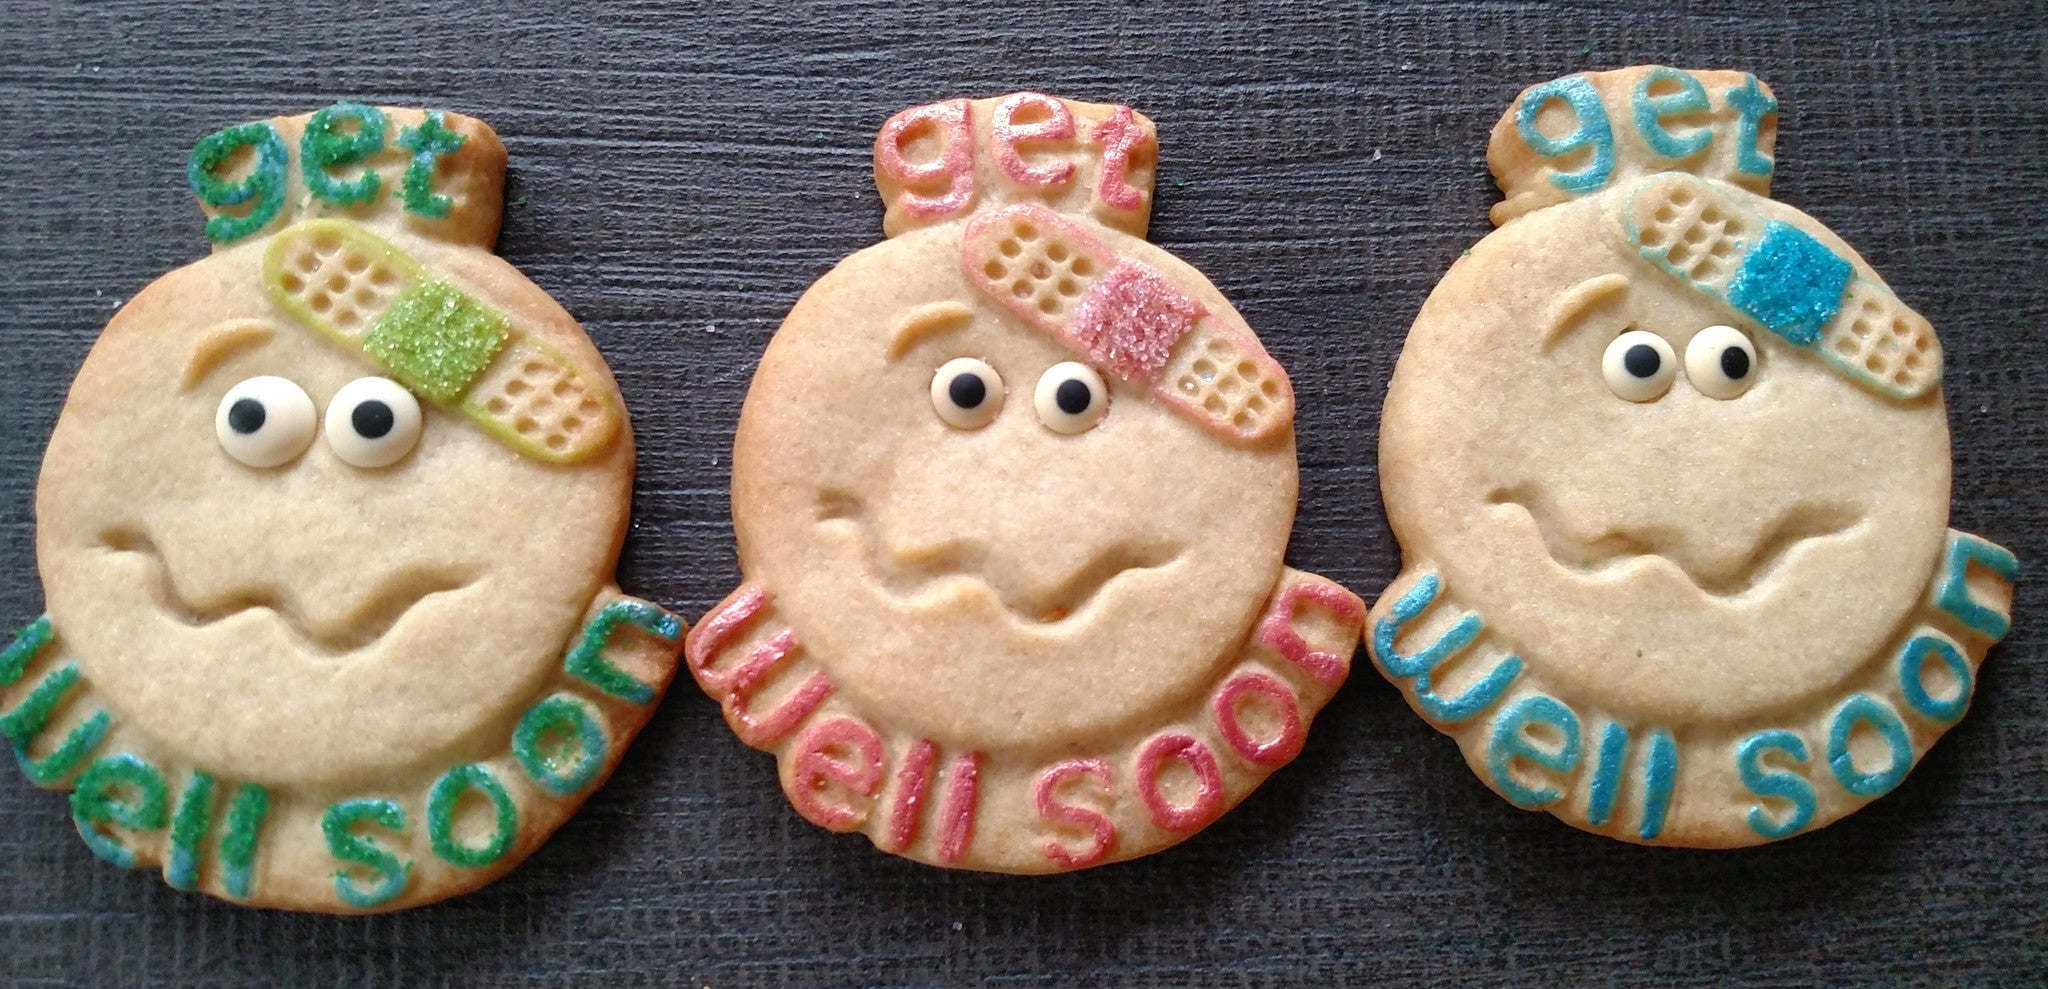 Get Well Cookie Mold - Artesão Unique & Custom Cookie Molds